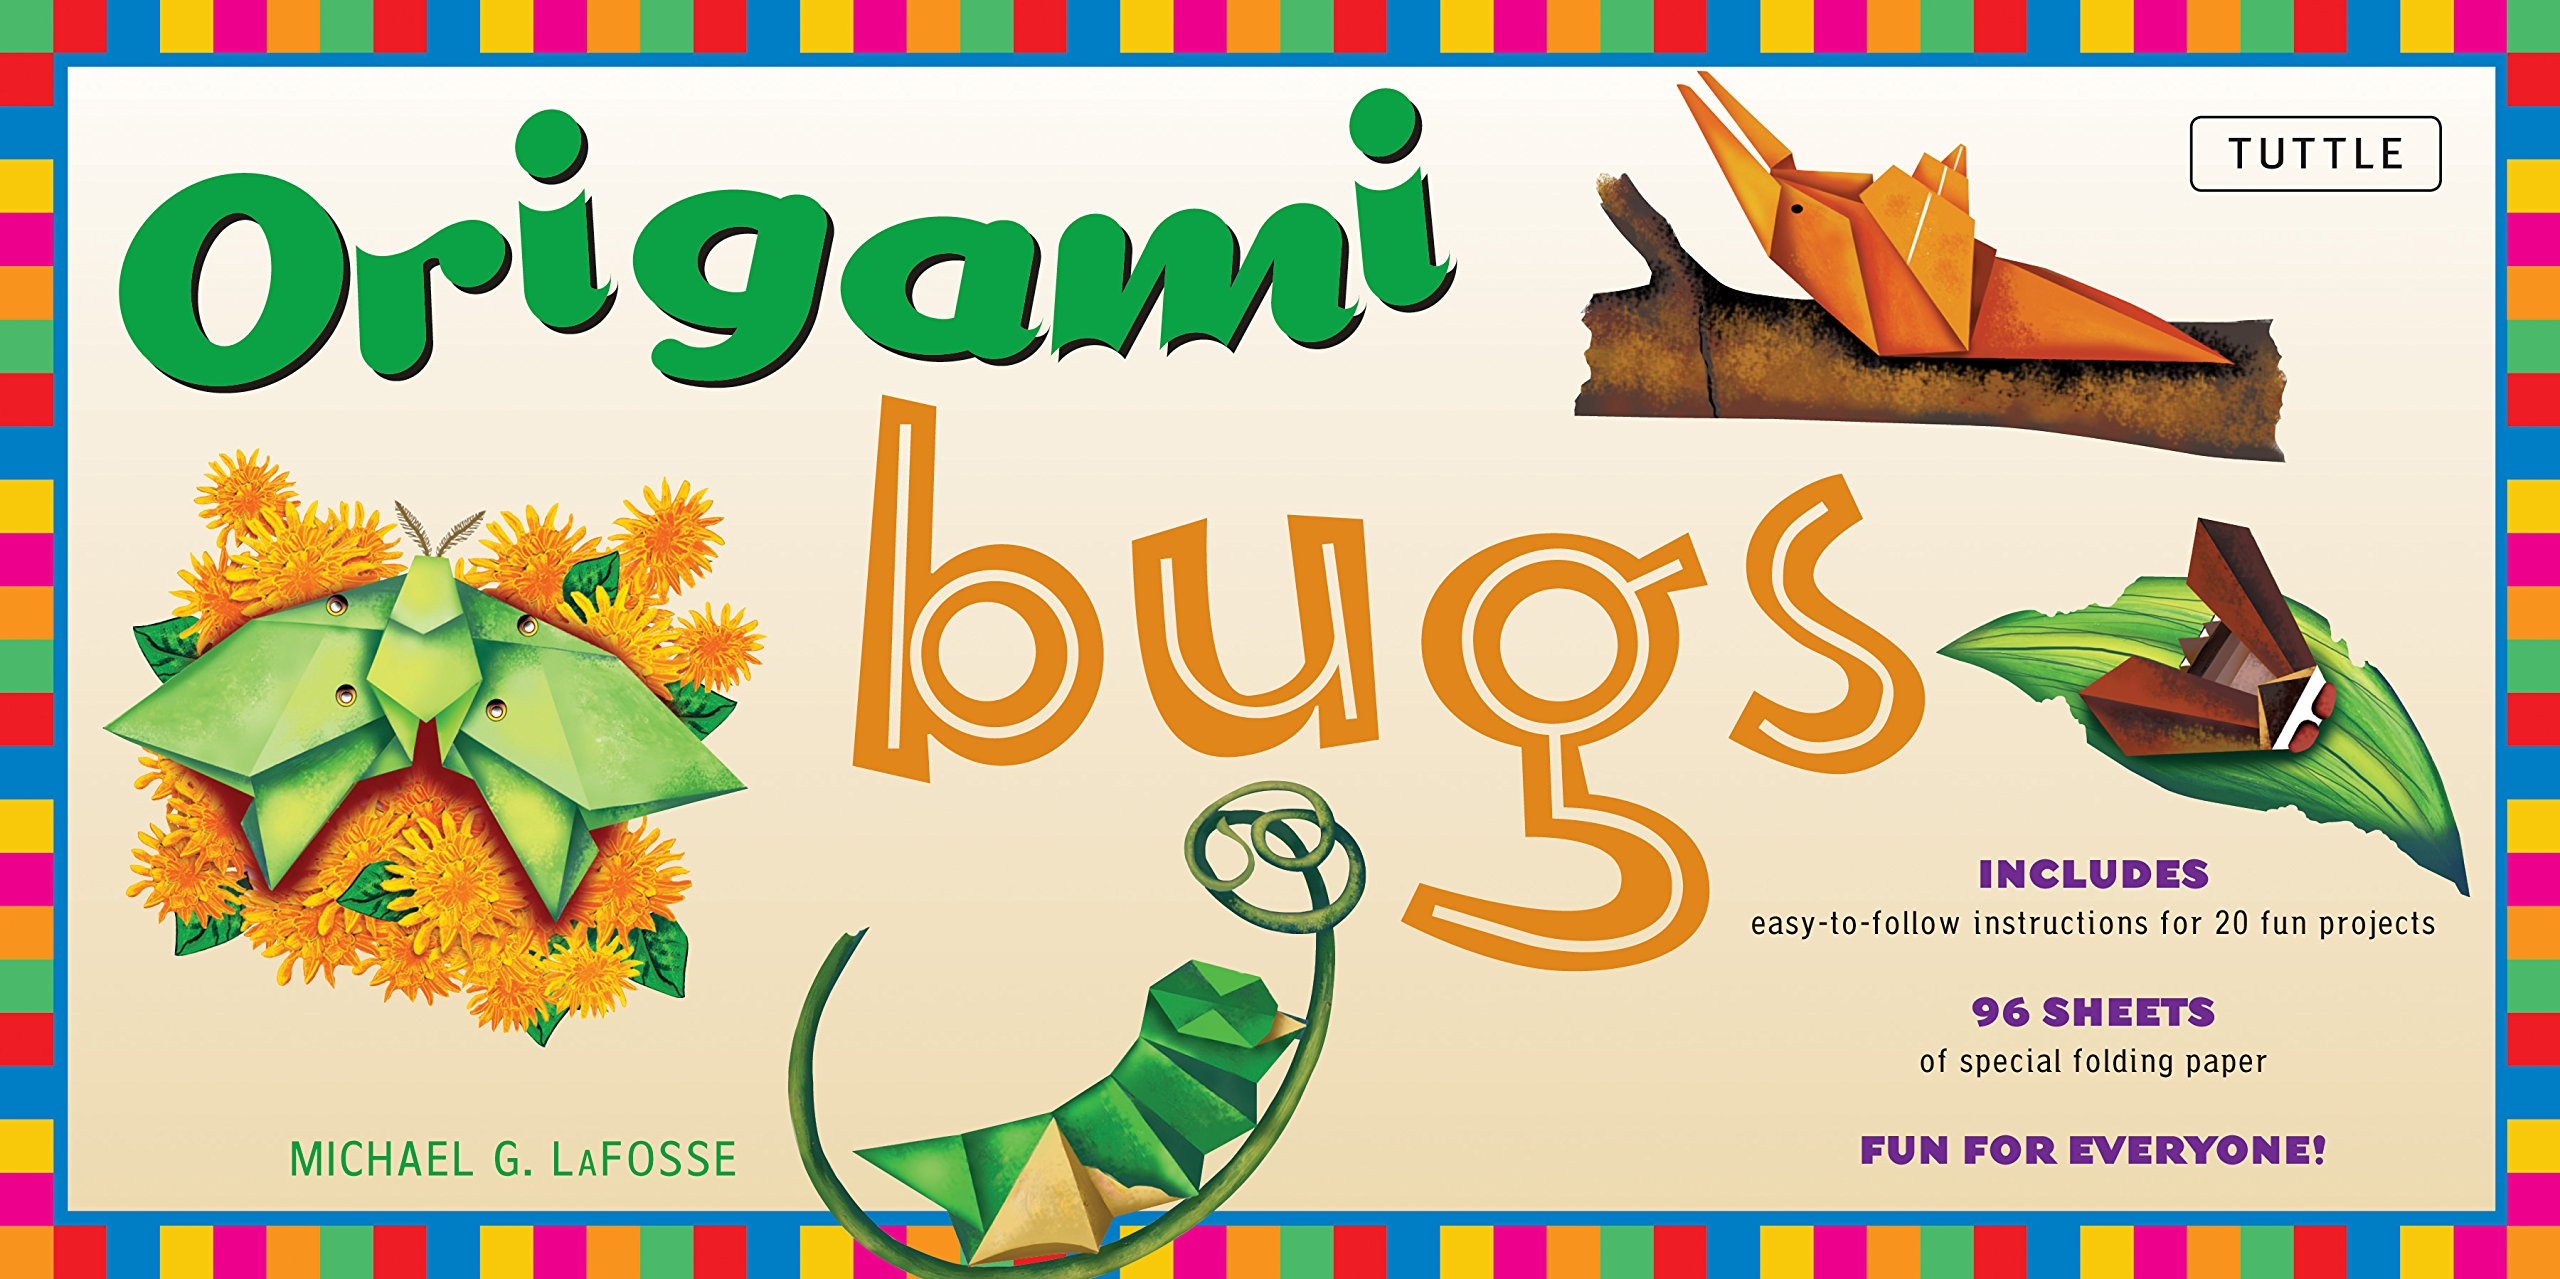 Download Origami Bugs Kit: Kit with 2 Origami Books, 20 Fun Projects and 98 Origami Papers: This Origami for Beginners Kit is Great for Both Kids and Adults PDF